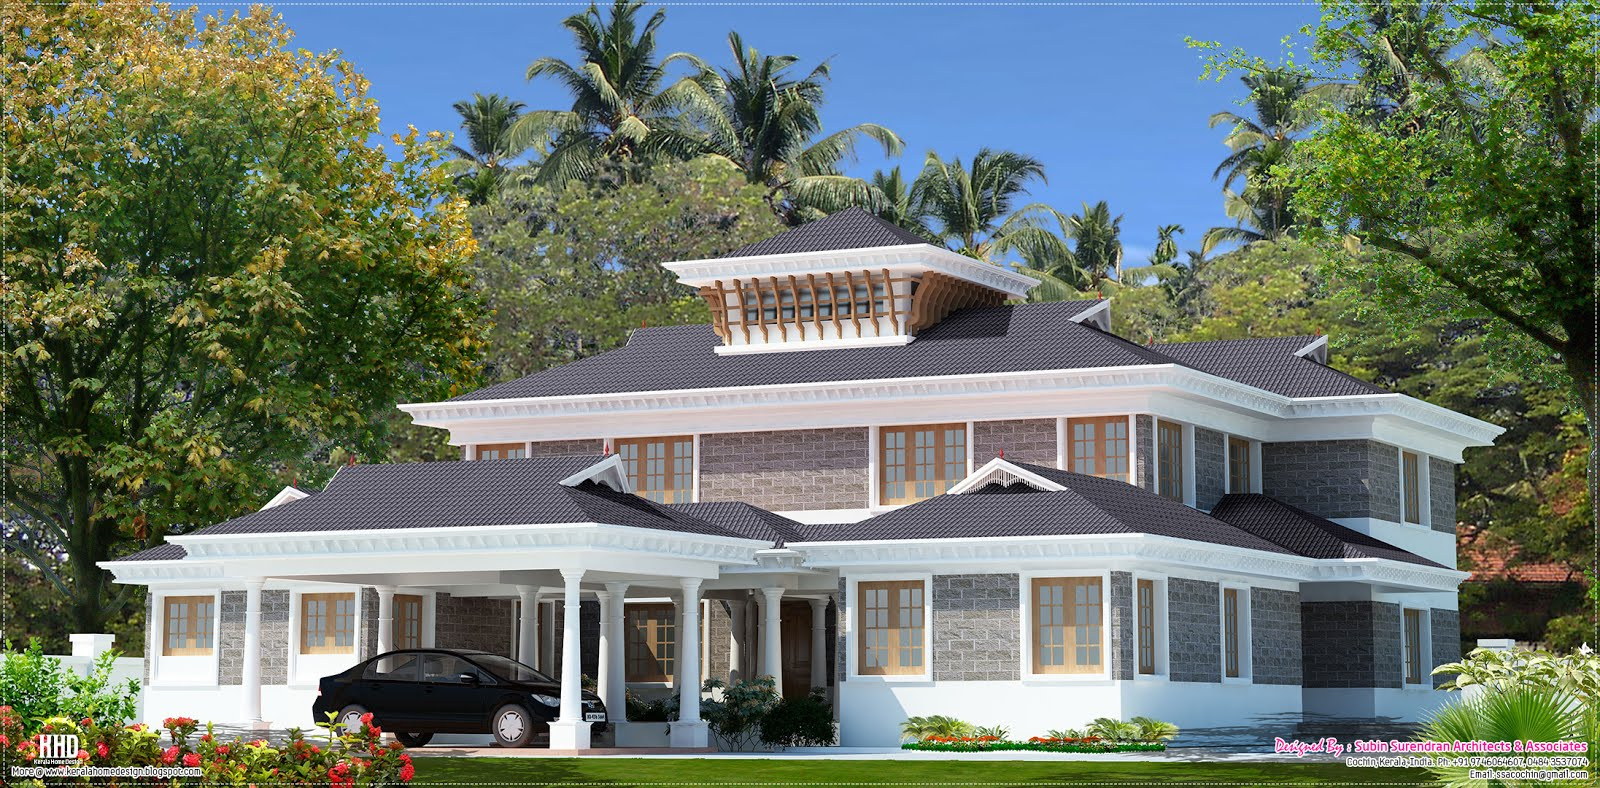 5000 luxury villa design kerala home design and for Modern house plans 5000 square feet